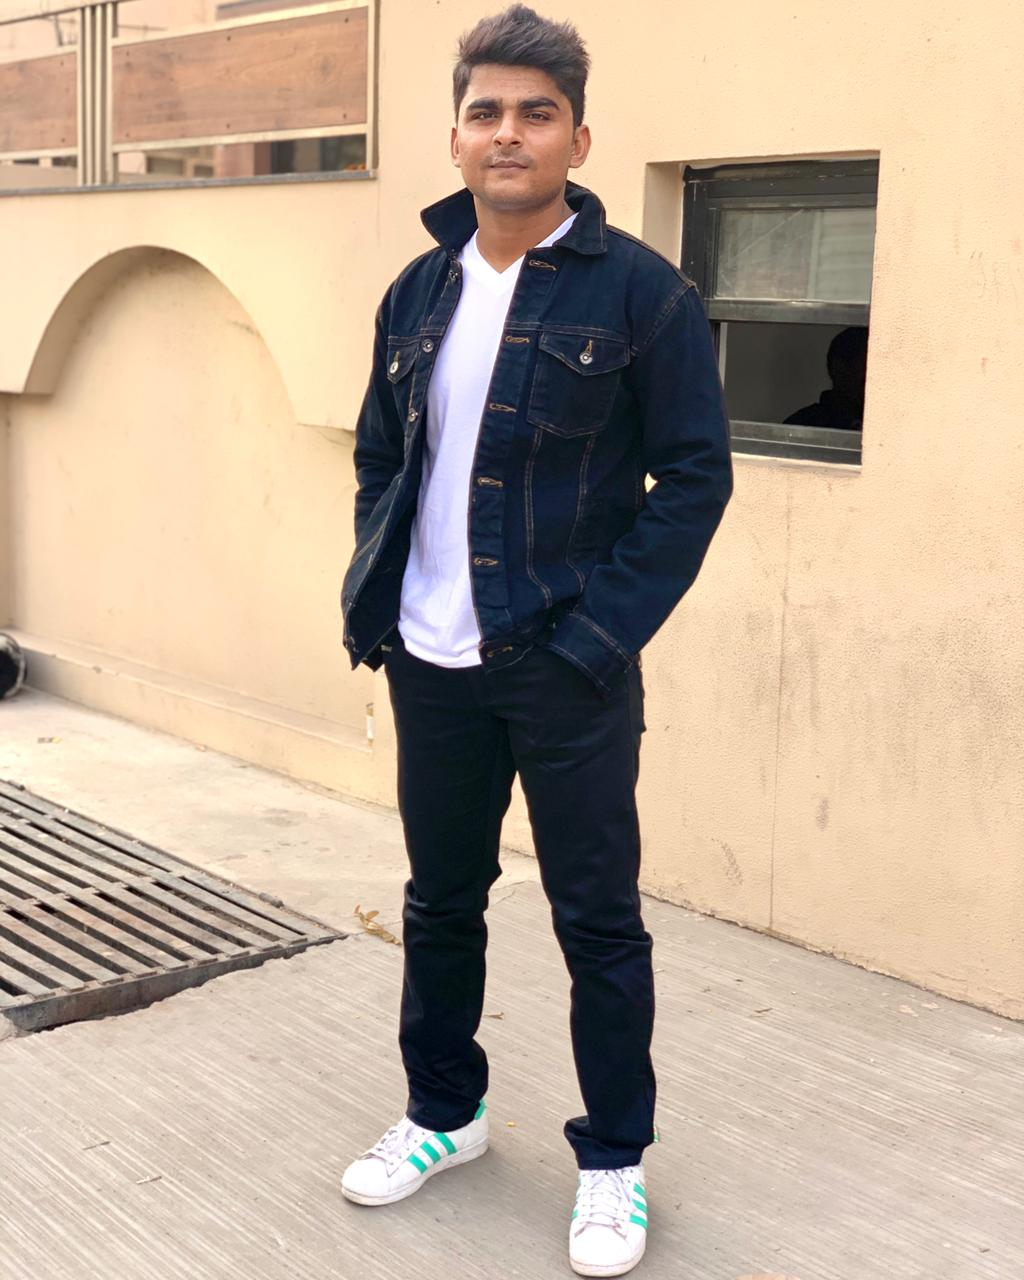 Top Influencer Shadab Shahid has created a niche for himself in the online world through his funny videos